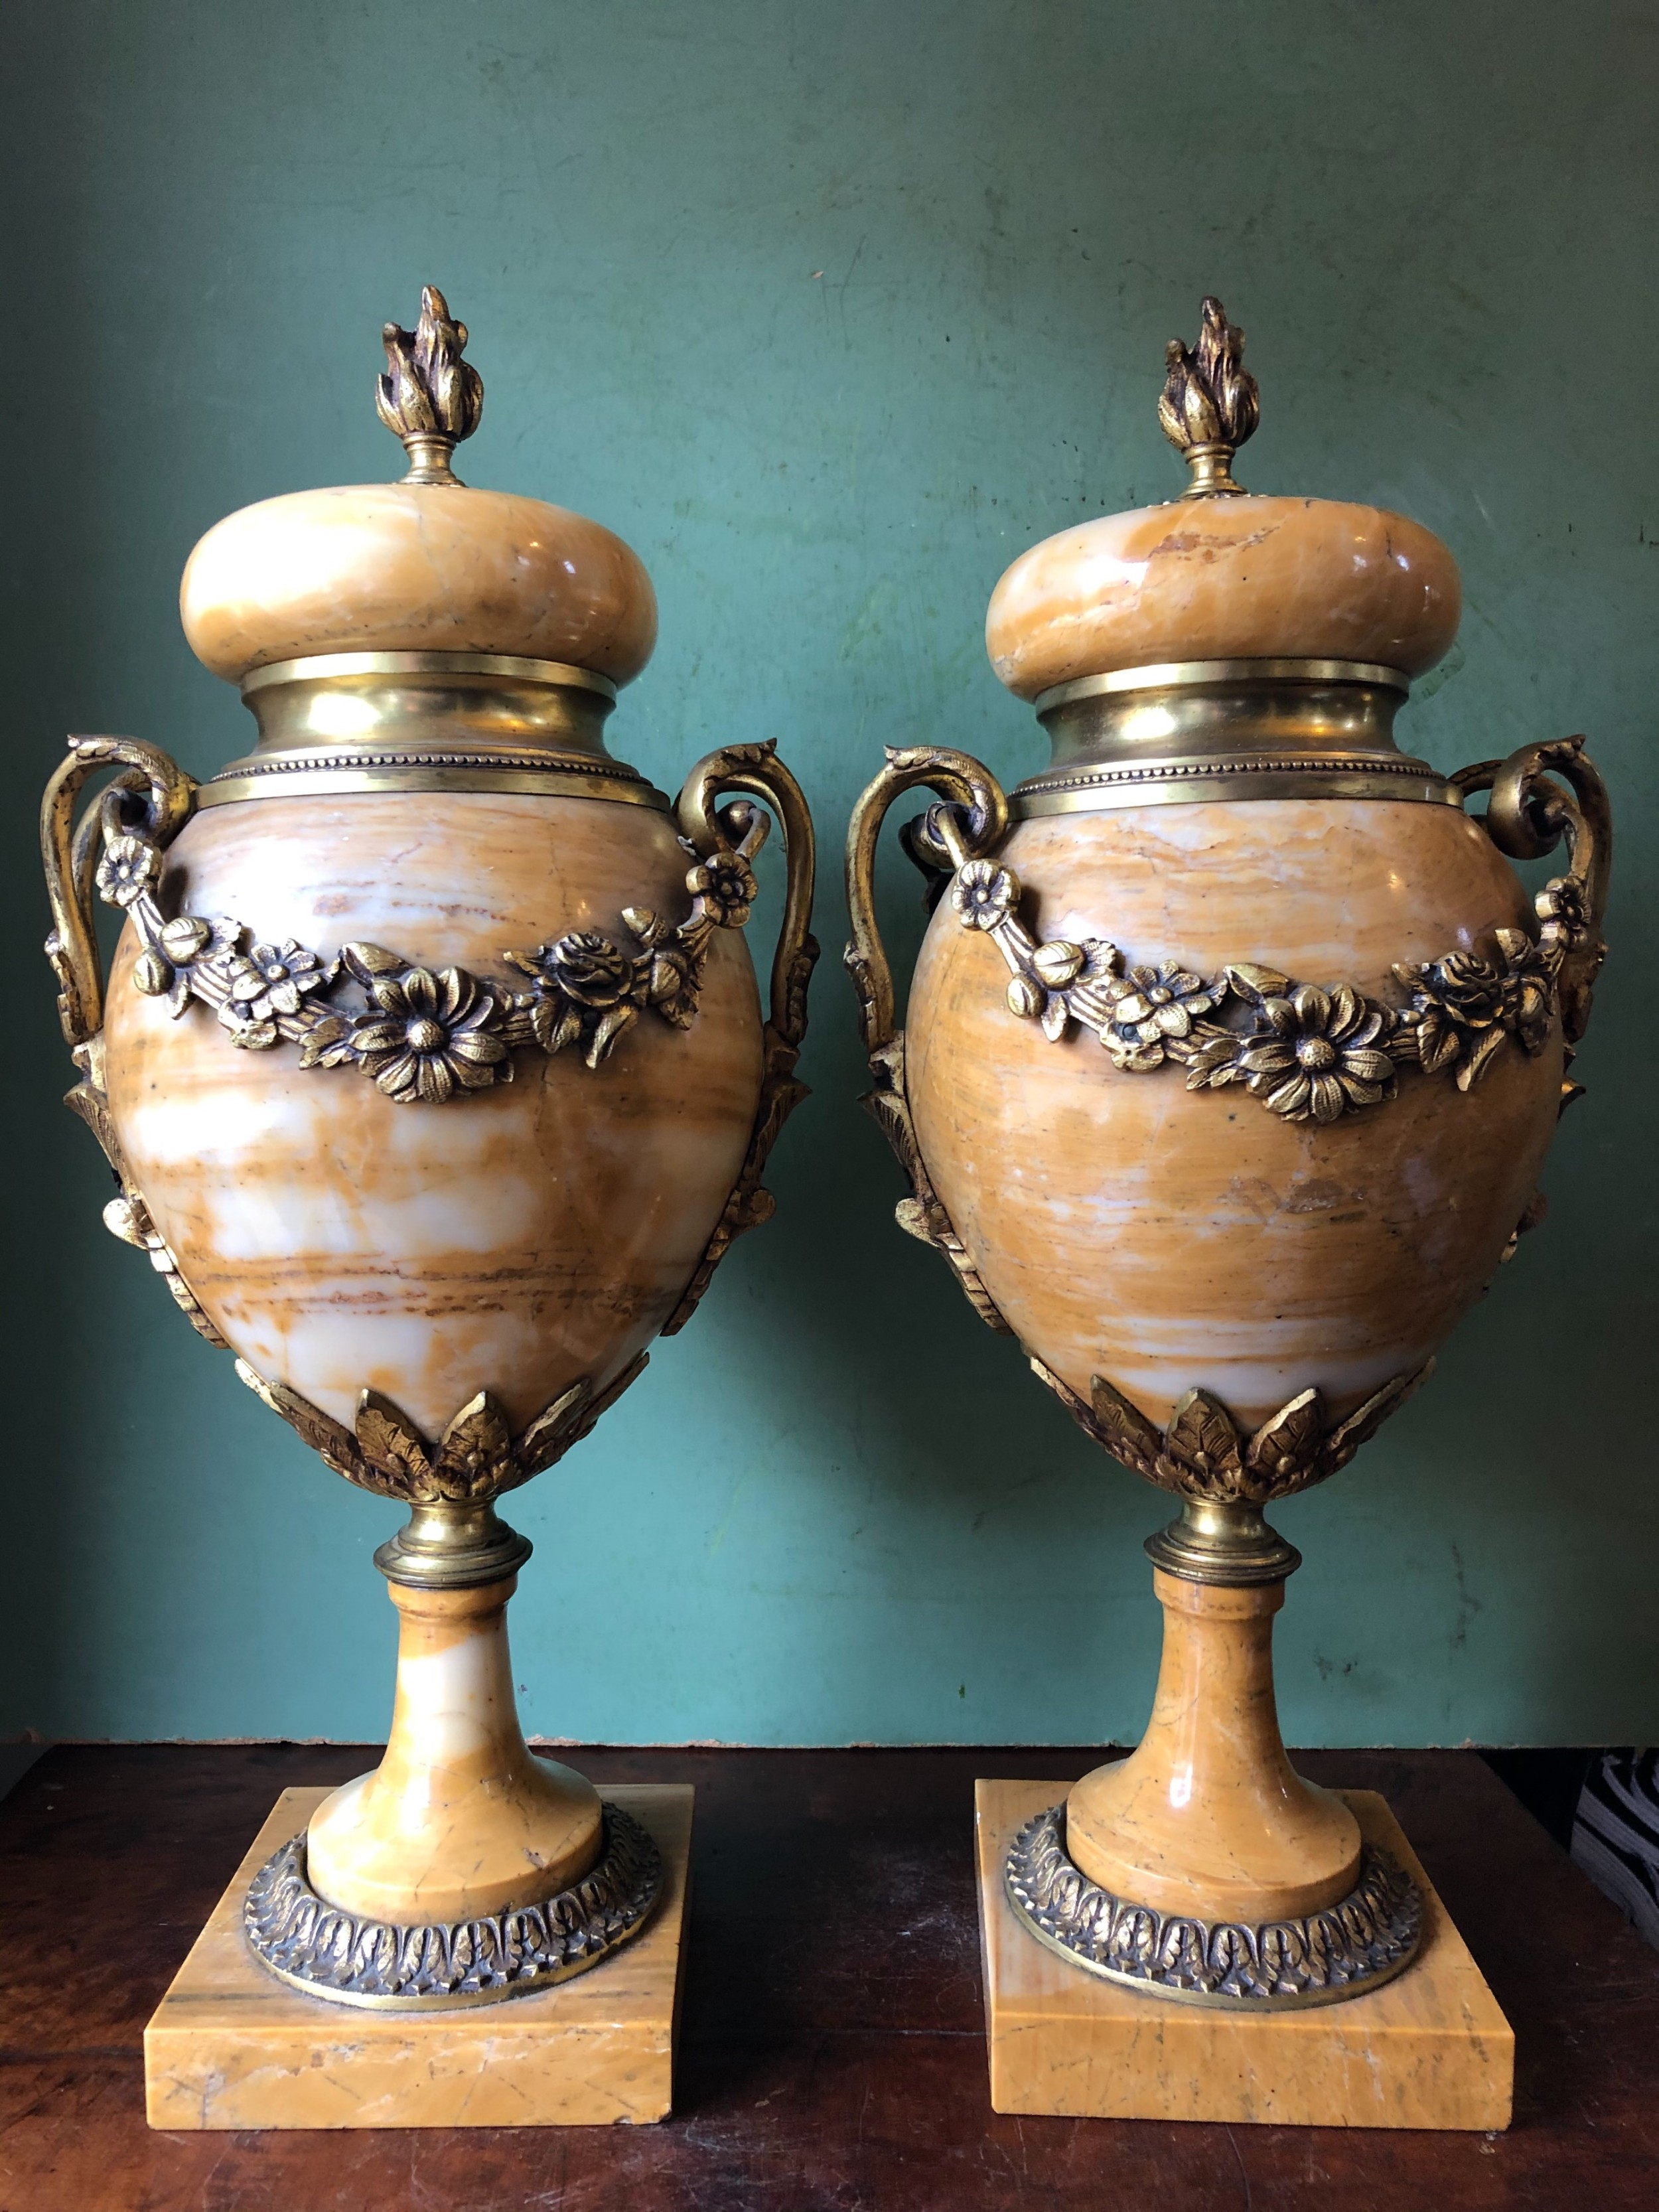 pair of late c19th early c20th french ormolumounted giallo di siena marble vases or cassolettes